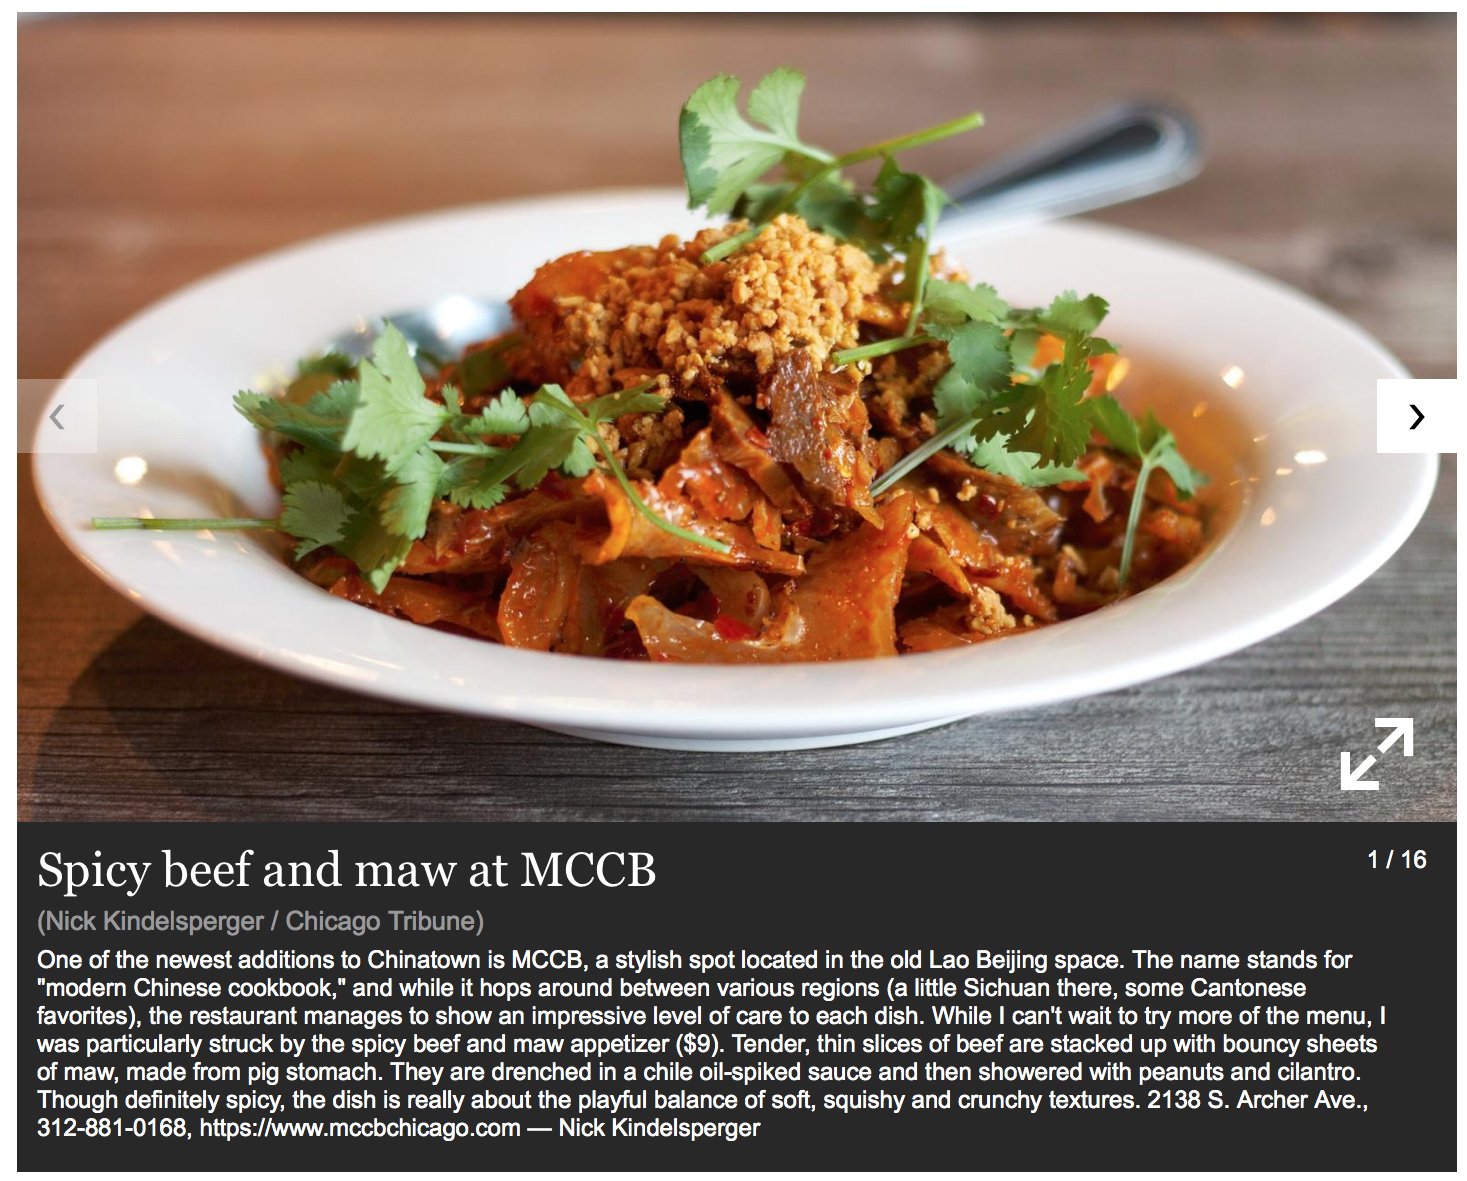 Szechuan Style Spicy Beef and Maw